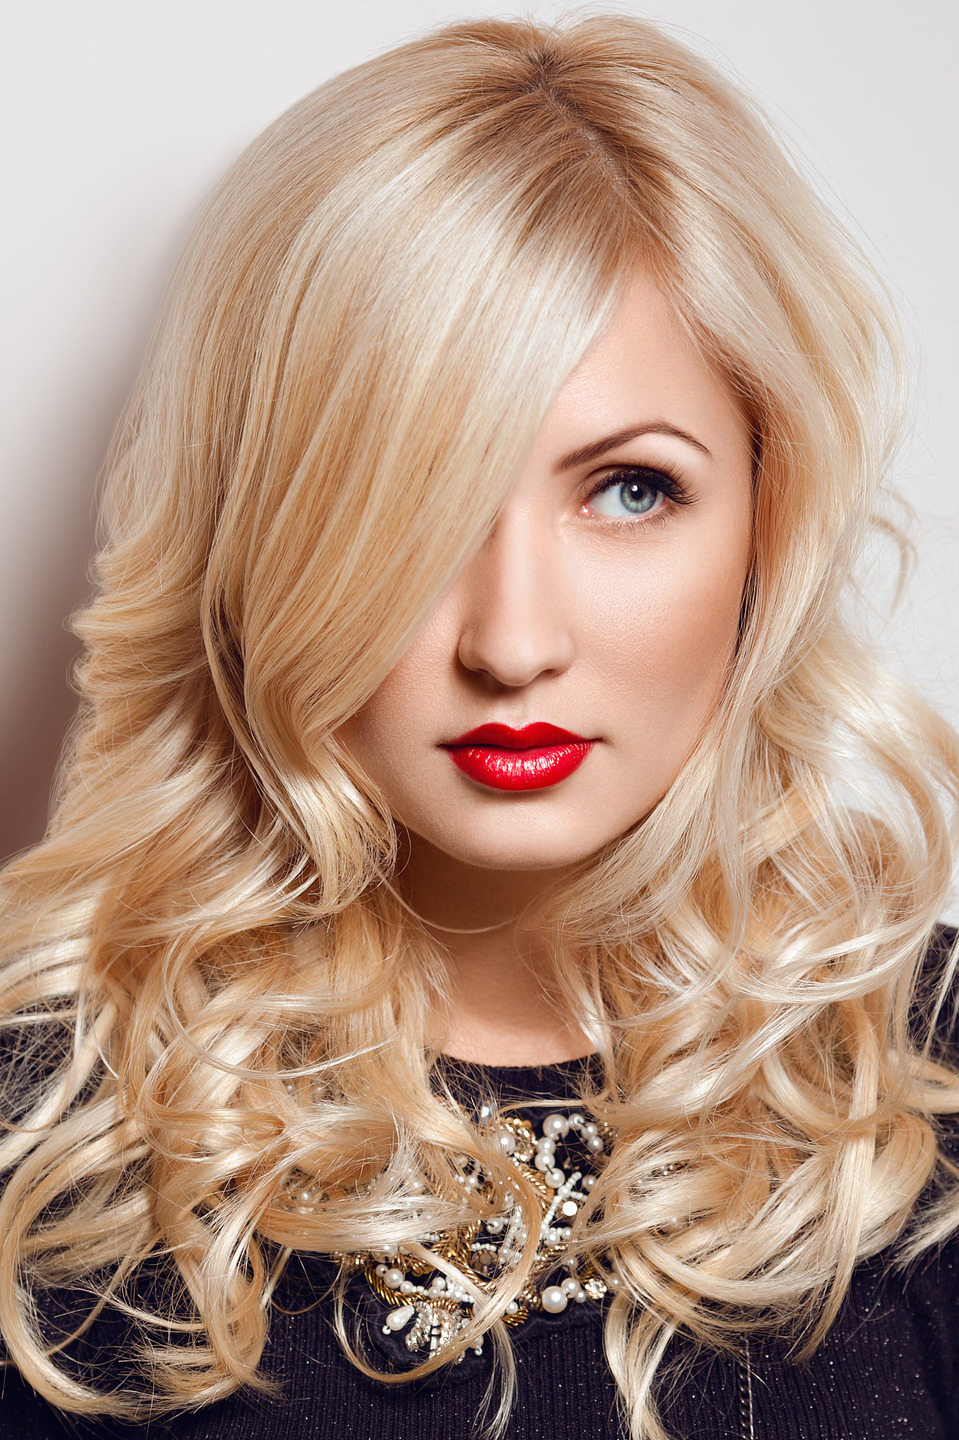 Beautiful blonde with red lips | glamour, model, woman, blonde, hair-do, red lipstick, make-up, blue eyes, beautiful, face